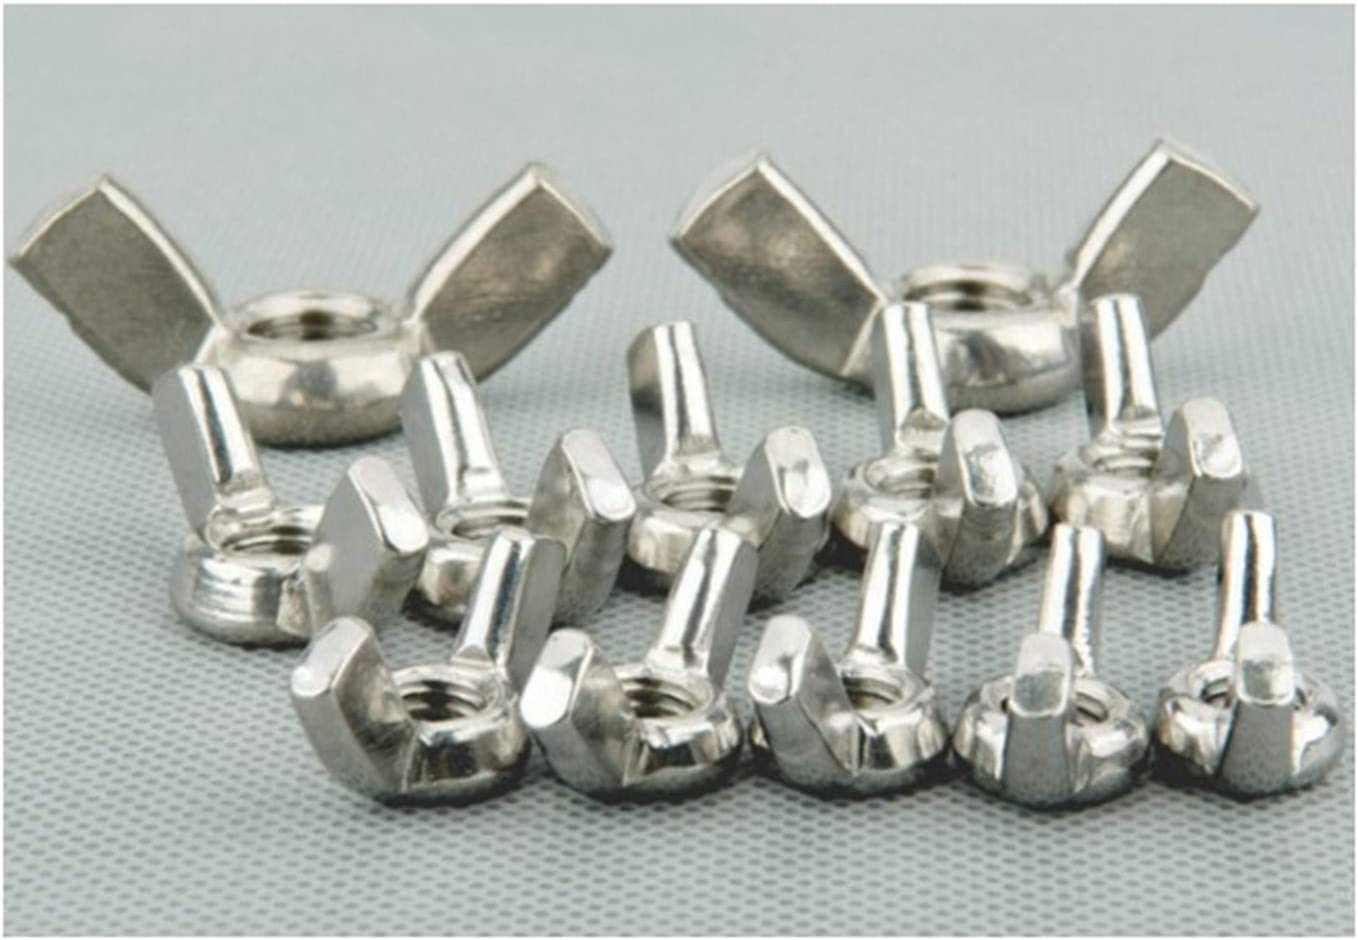 DINGGUANGHE-CUP Hex Nuts 50 Pieces 304 Stainless Steel Wing Nuts Butterfly Nuts M3 Metic Threaded Machine Screw Nuts